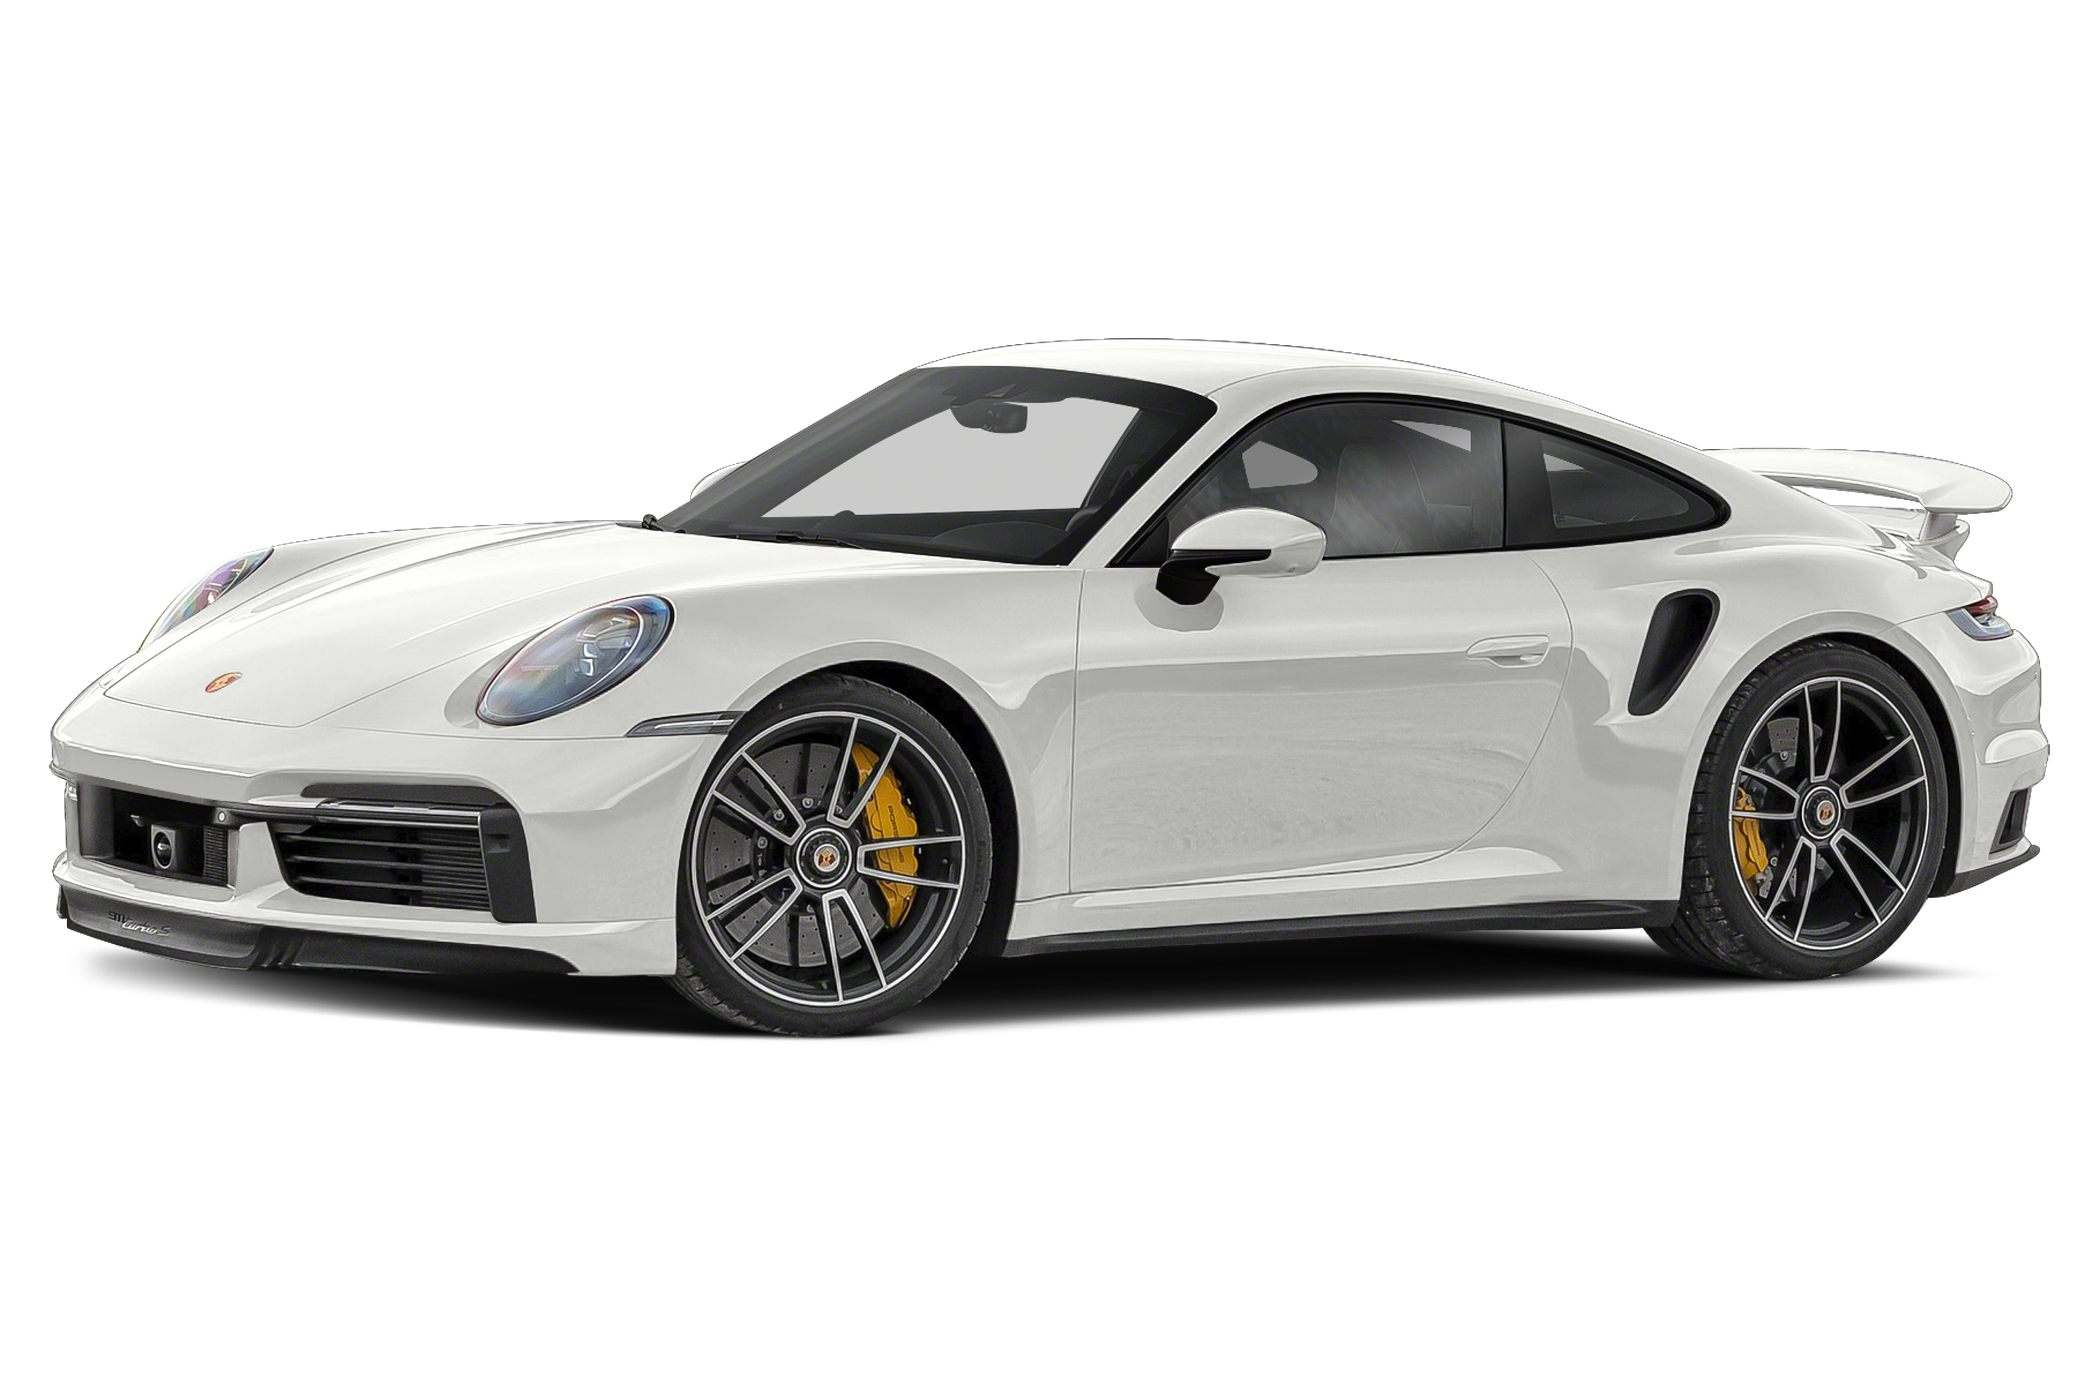 2021 Porsche 911 Turbo S 2dr All Wheel Drive Coupe Specs And Prices